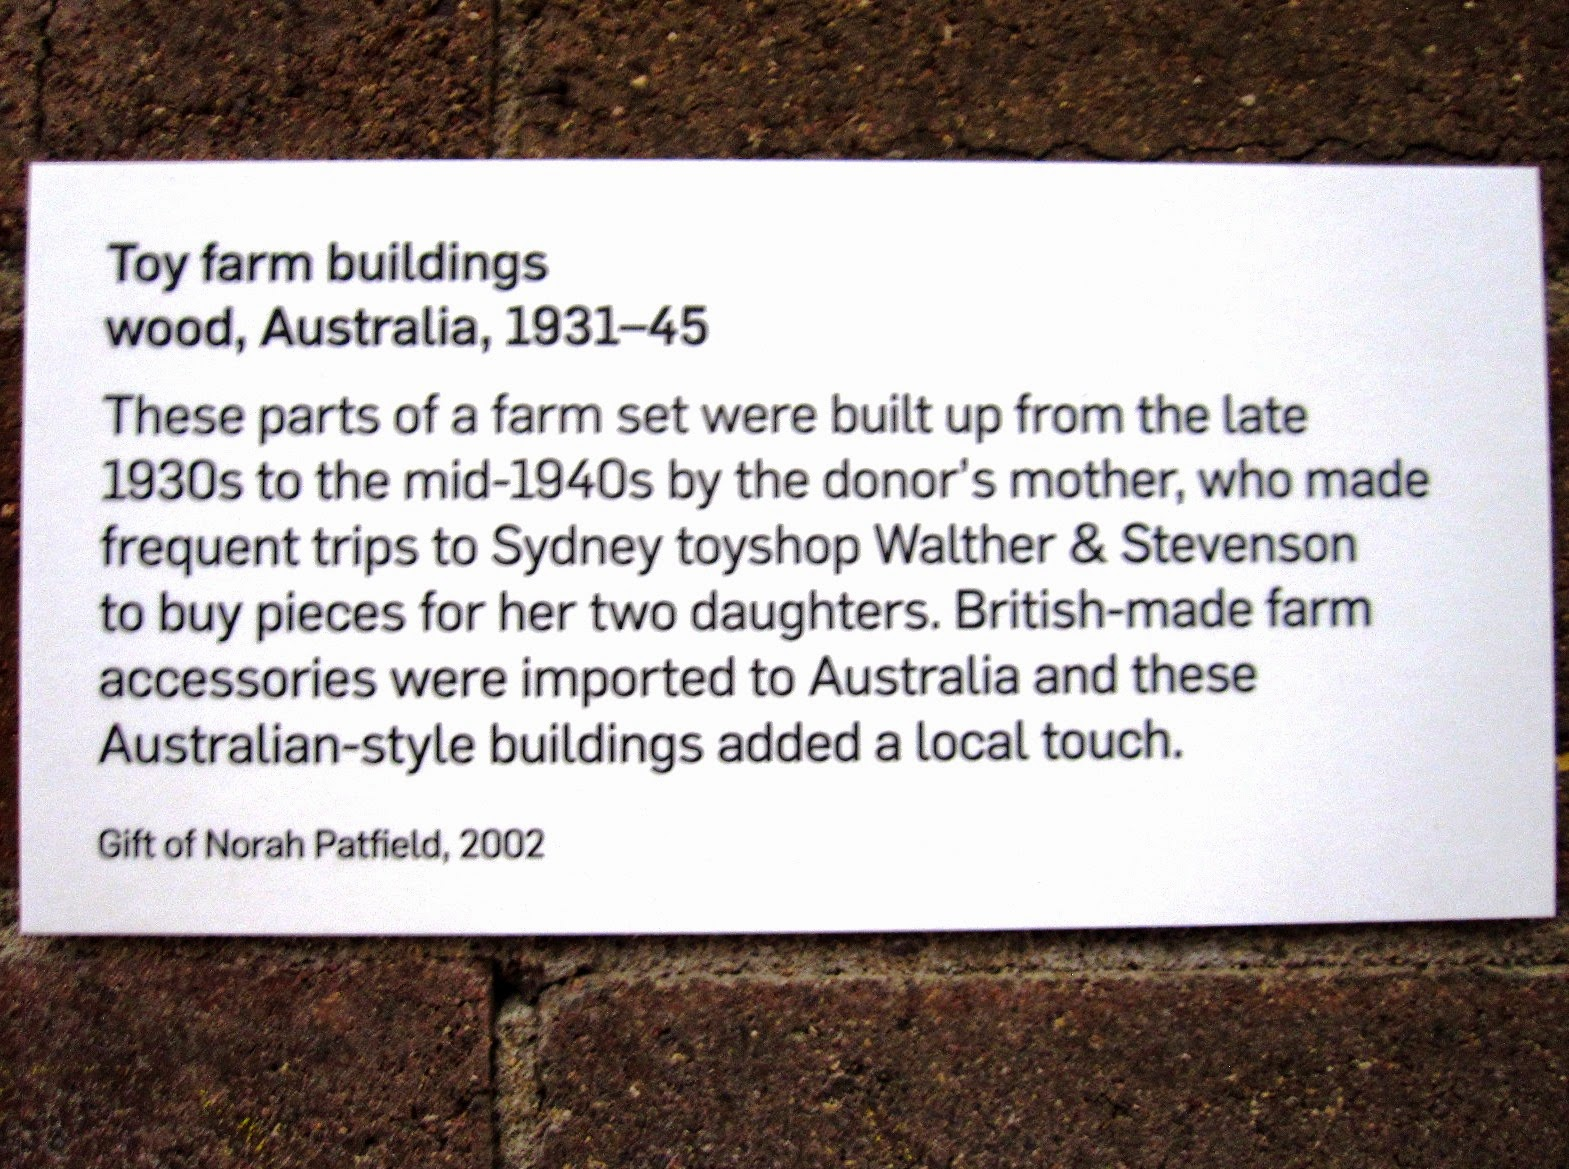 Museum exhibition explanatory sign for a display of vintage toy farm buildings from Sydney shop Walther & Stevenson.